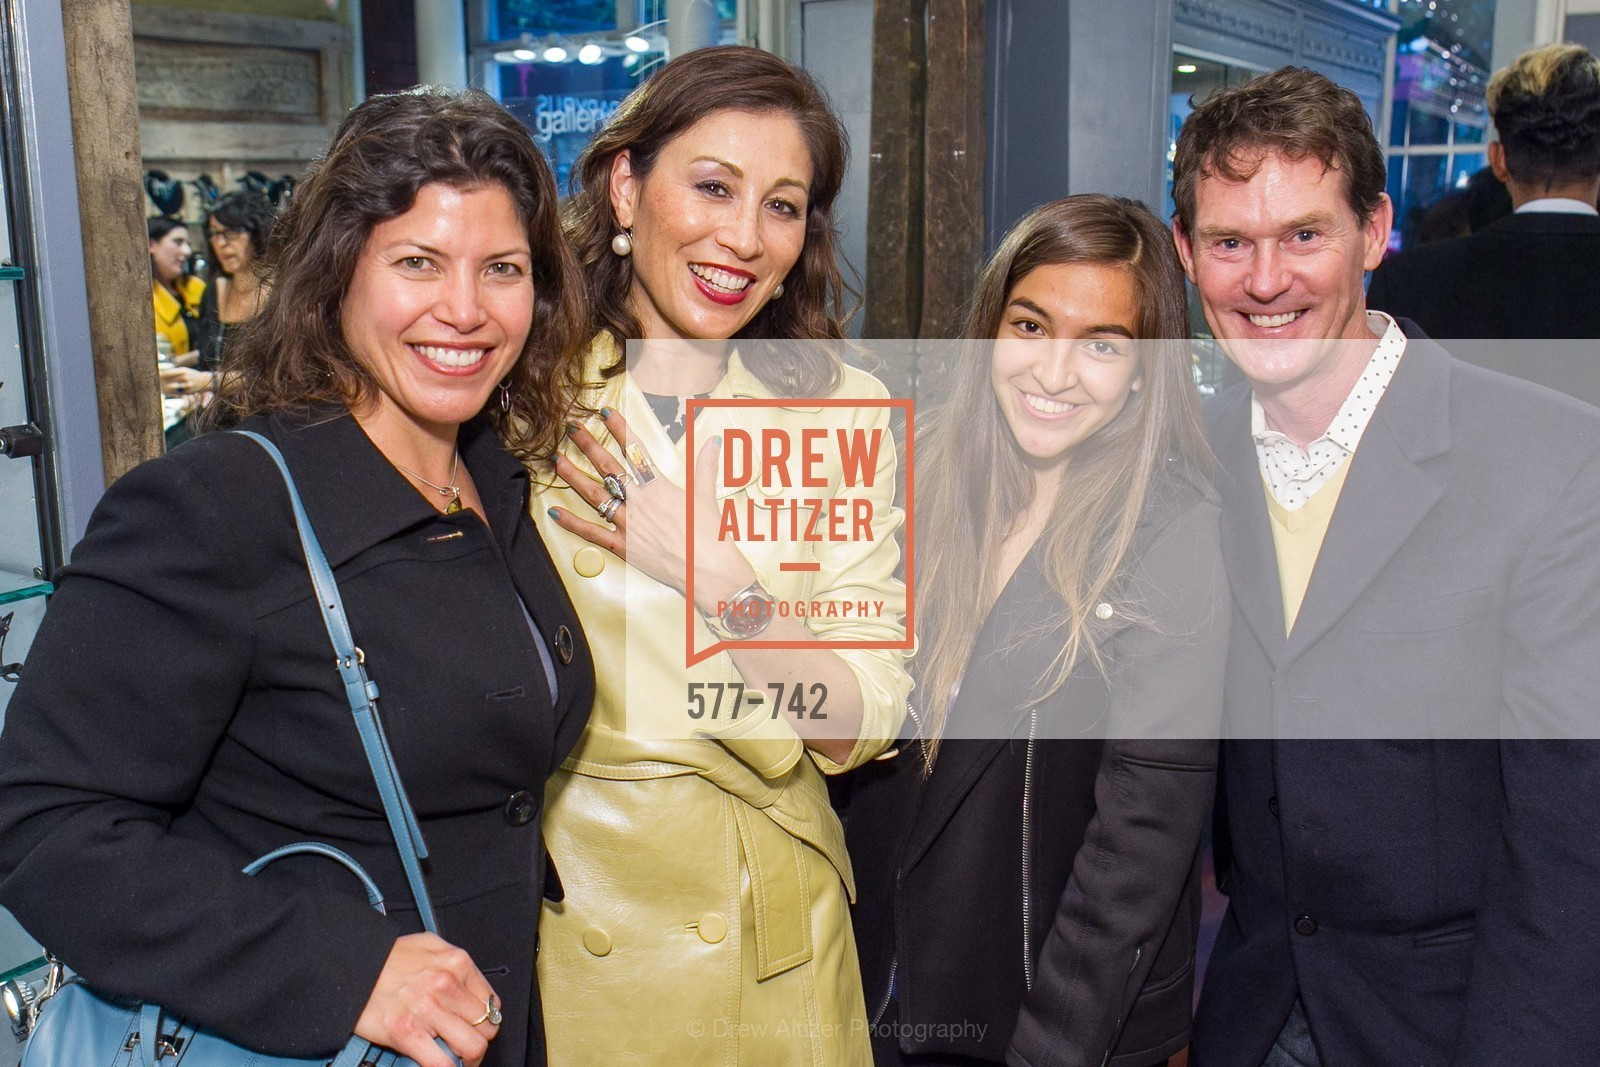 Alyssa Etzel, Michelle Pender, Emilie Rader, Ian Murray, LUXETIGERS & GALLERY OF JEWELS Benefit for Dress for Success, US, May 21st, 2015,Drew Altizer, Drew Altizer Photography, full-service agency, private events, San Francisco photographer, photographer california